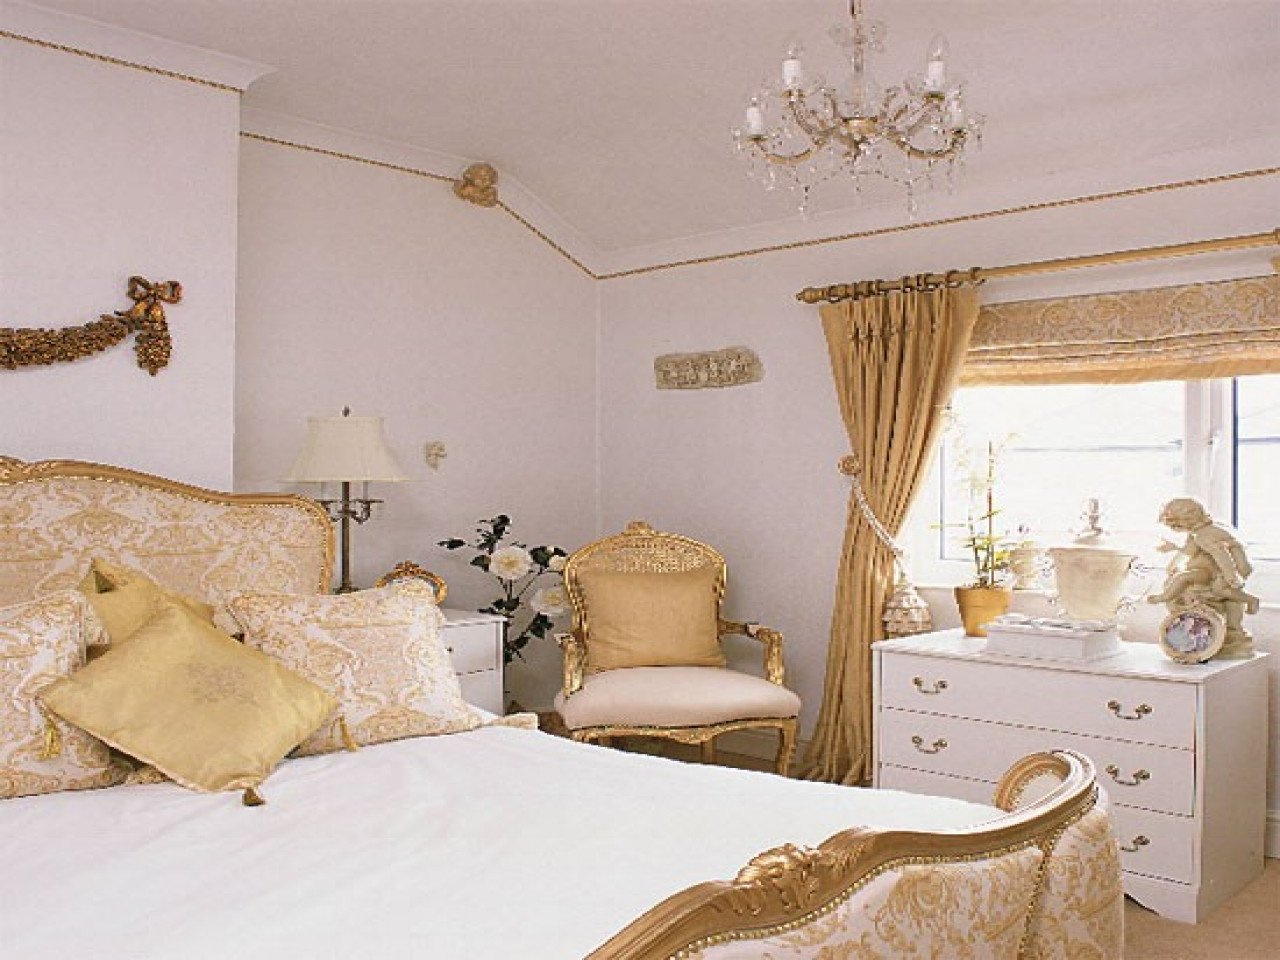 Gold and White Bedroom Decor Fresh White and Gold Bedroom Design Decorating Ideas Image Designs